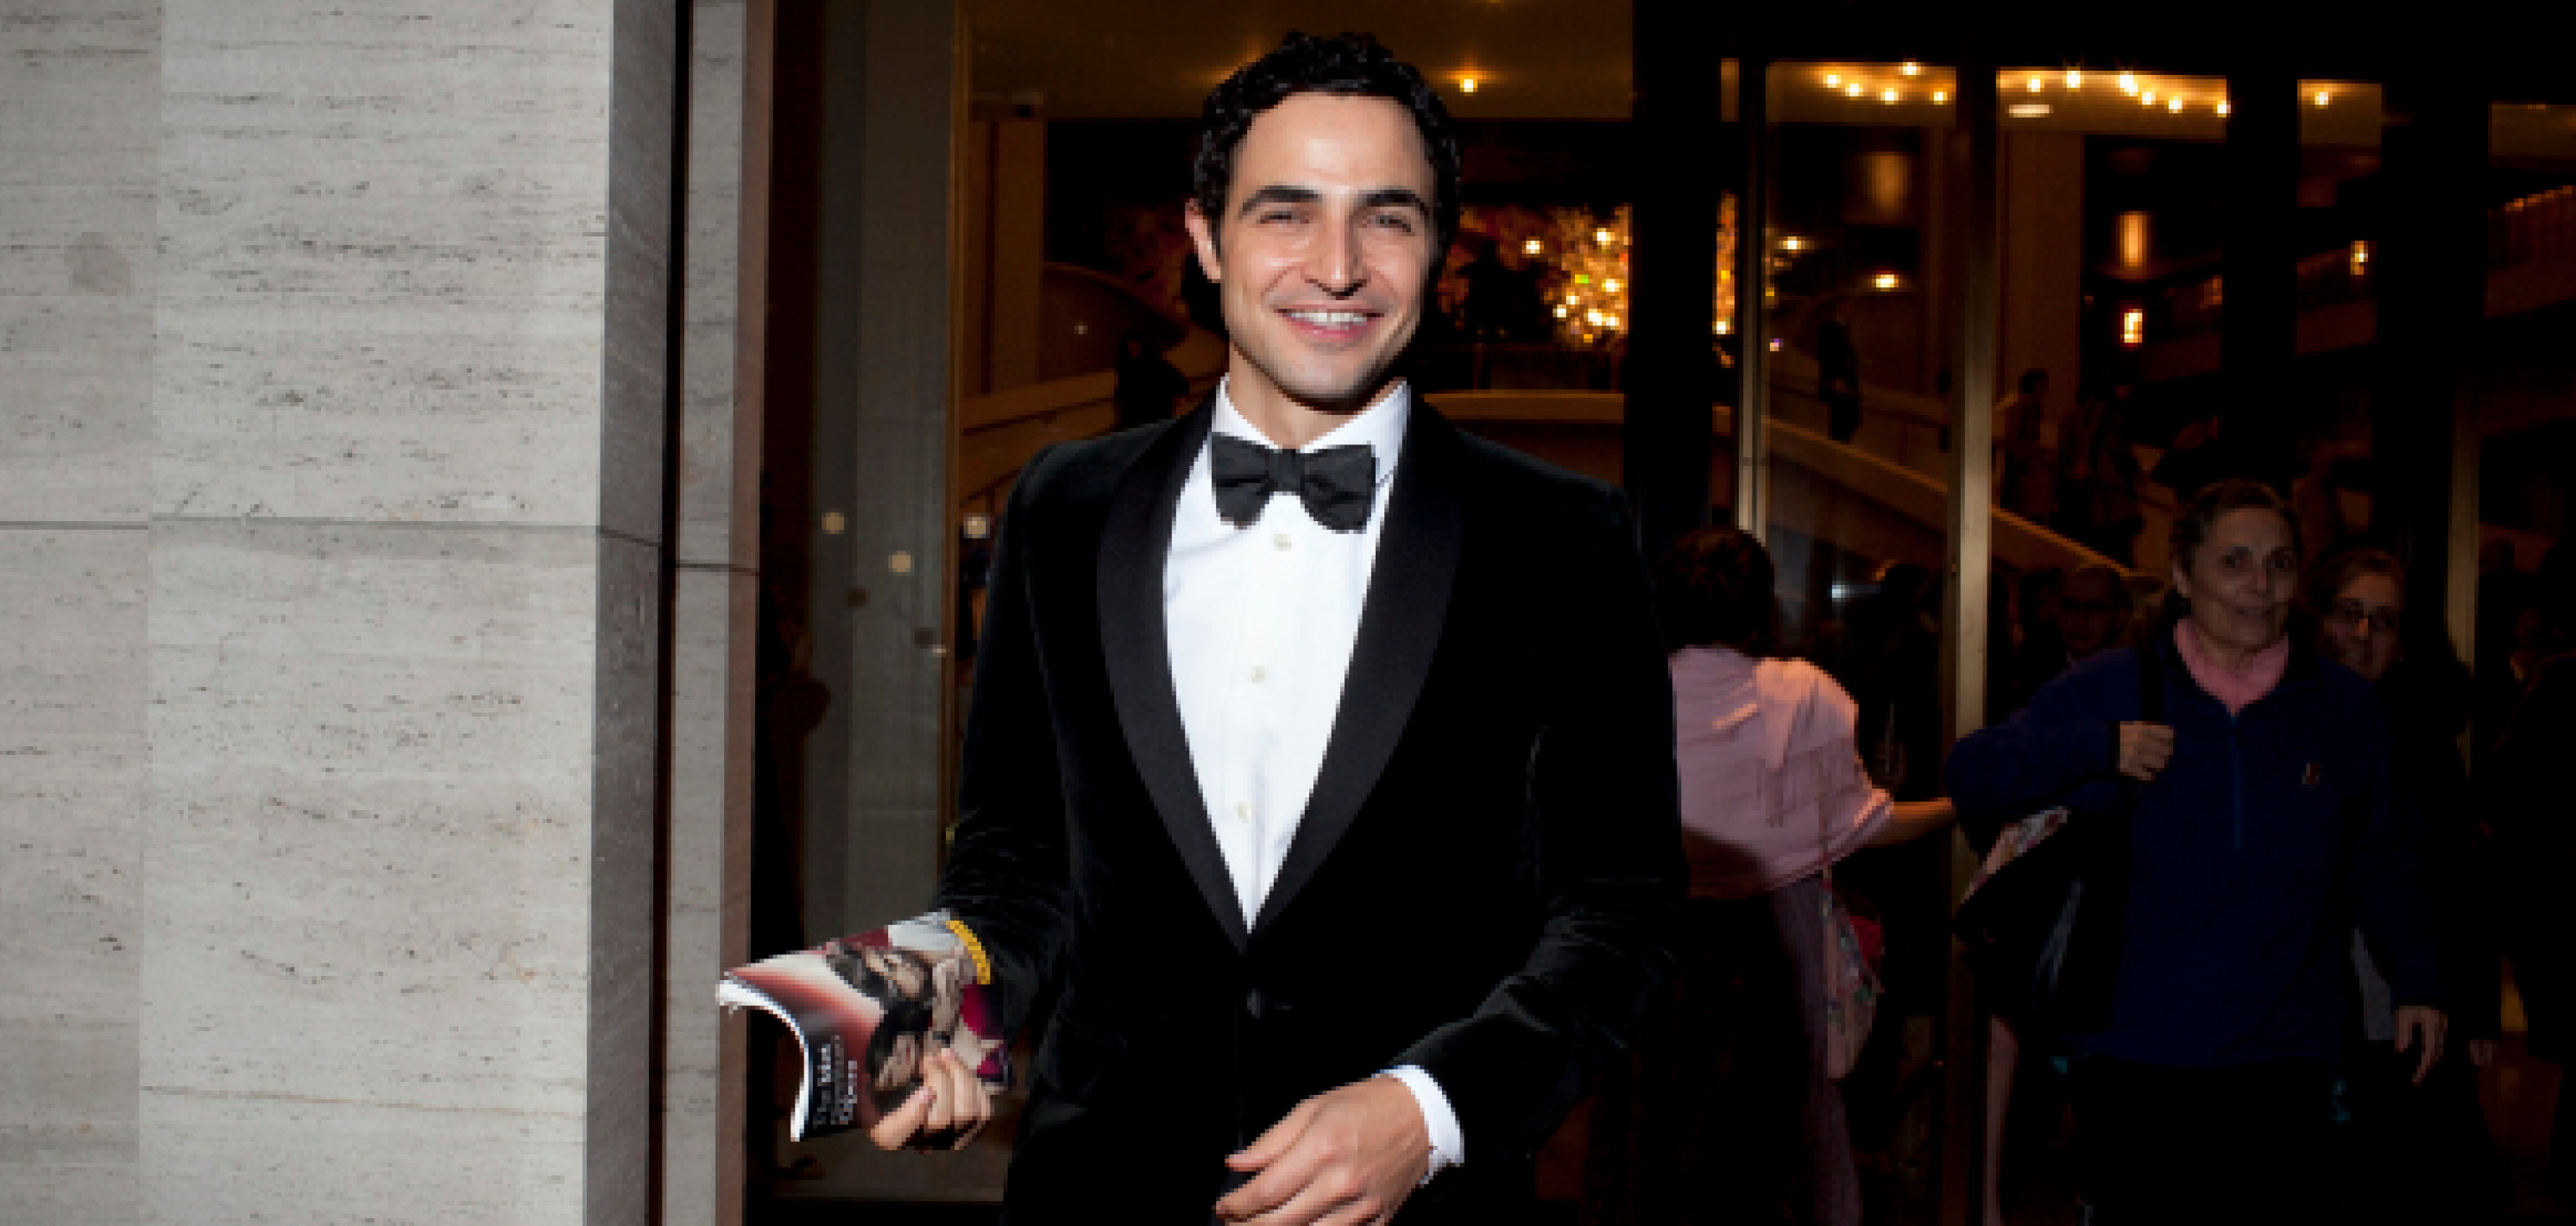 ZAC POSEN TRADEMARK REPORTEDLY SOLD TO CENTRIC BRANDS